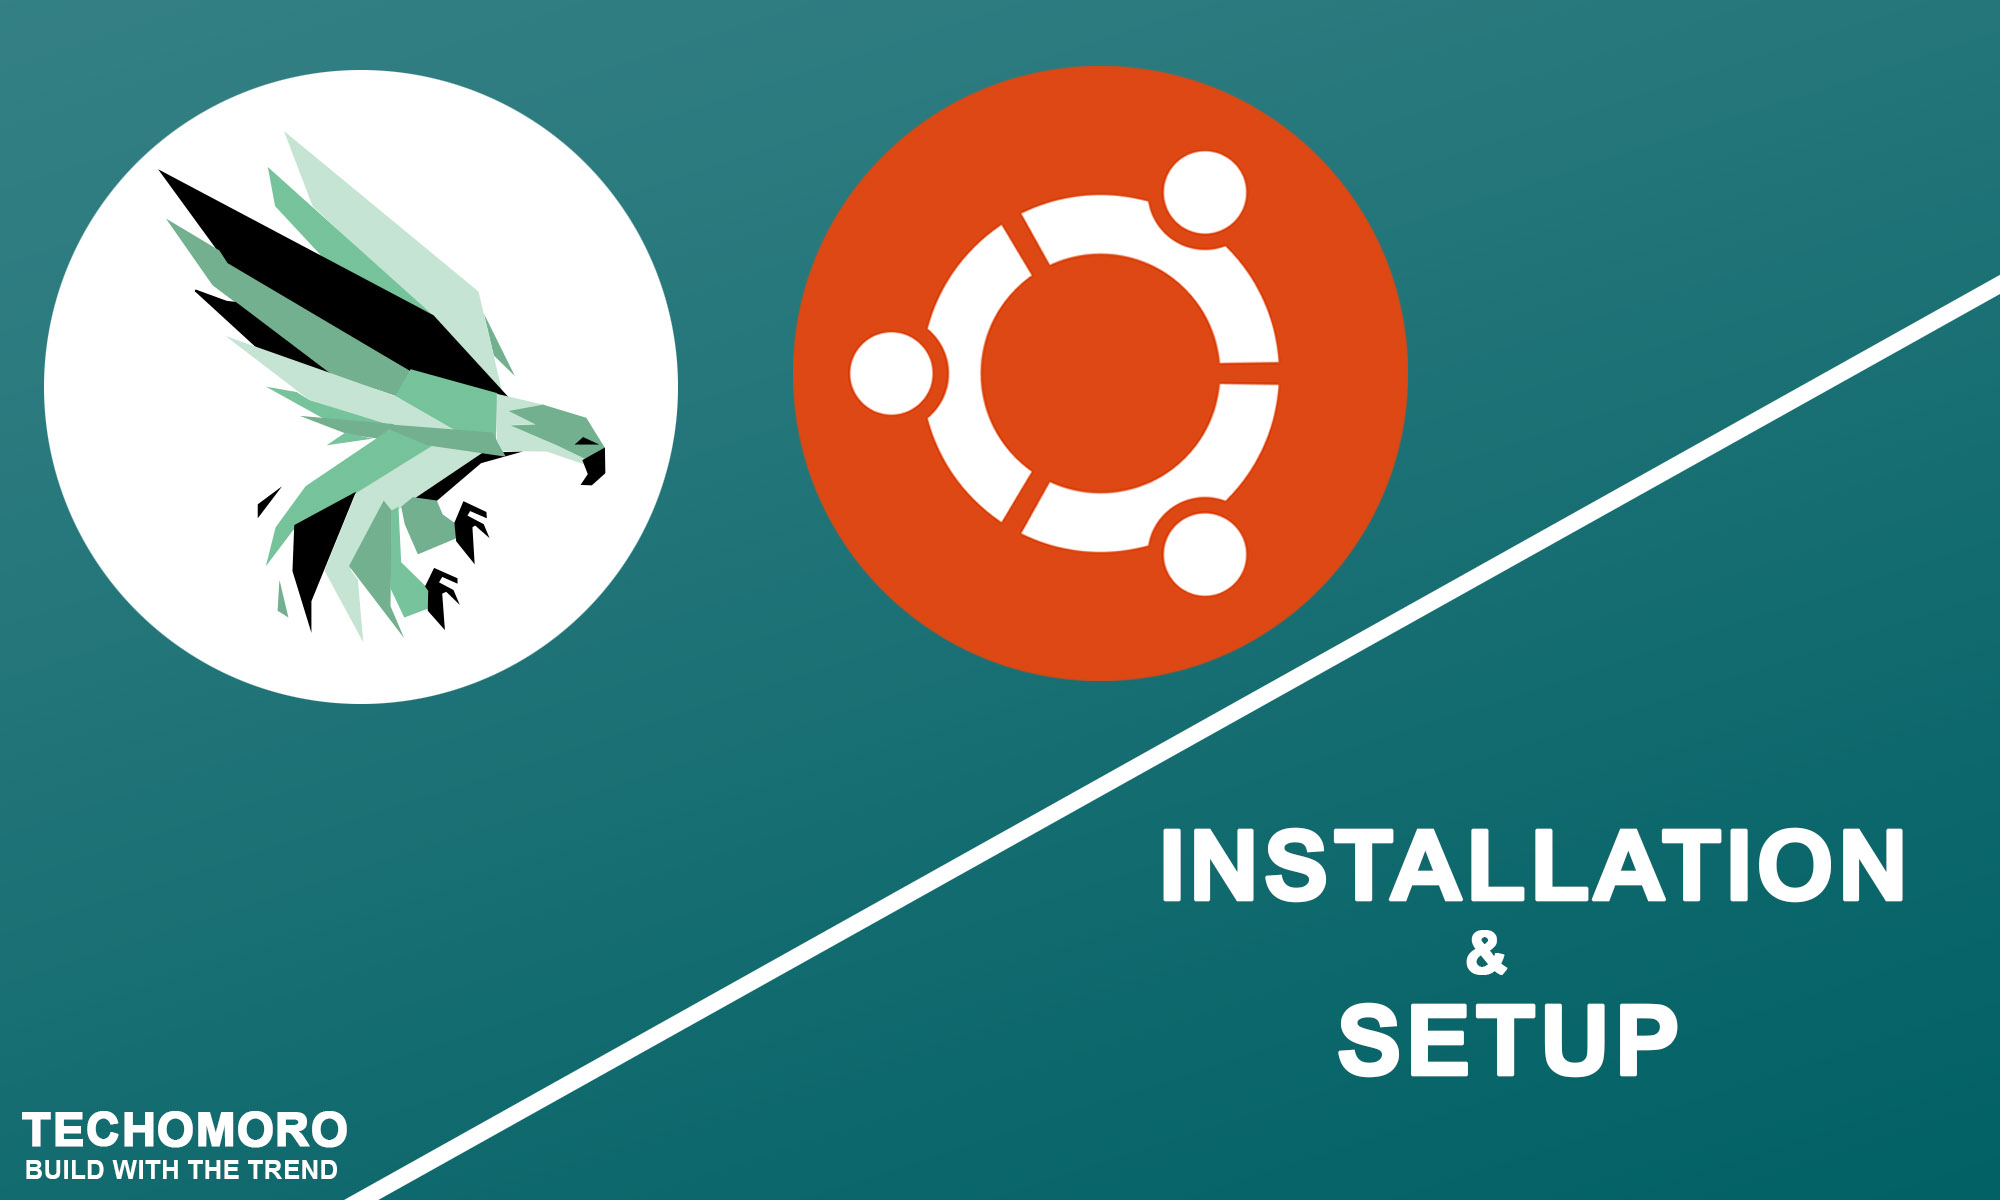 INSTALL AND SETUP PHALCON 3.3 ON UBUNTU 18.04.1 LTS